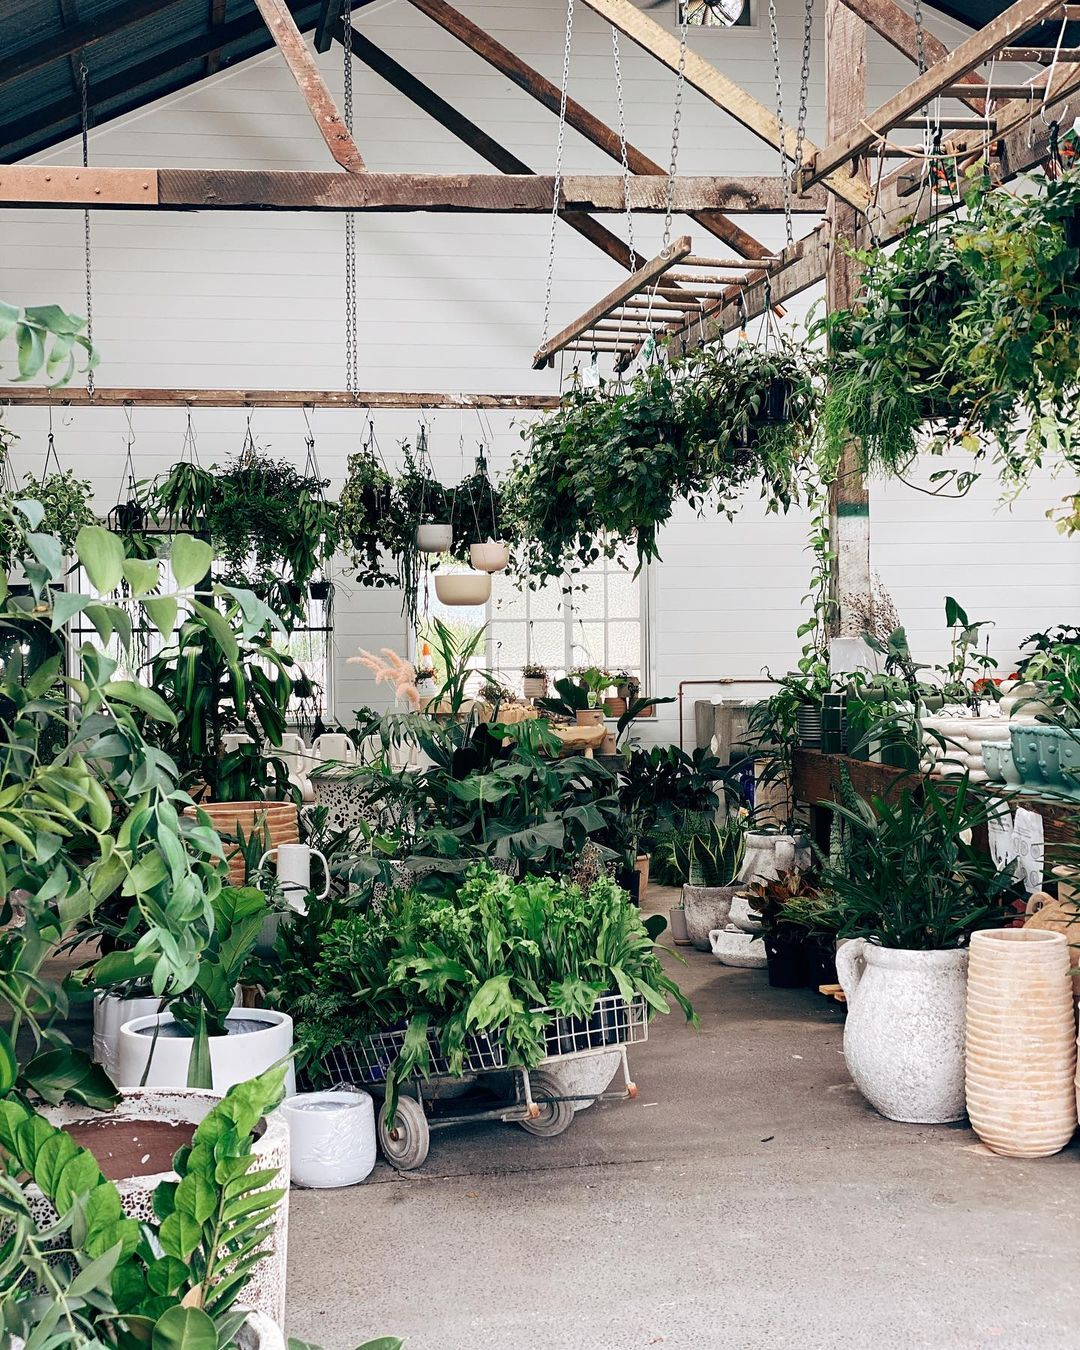 a warehouse style shop full of plants